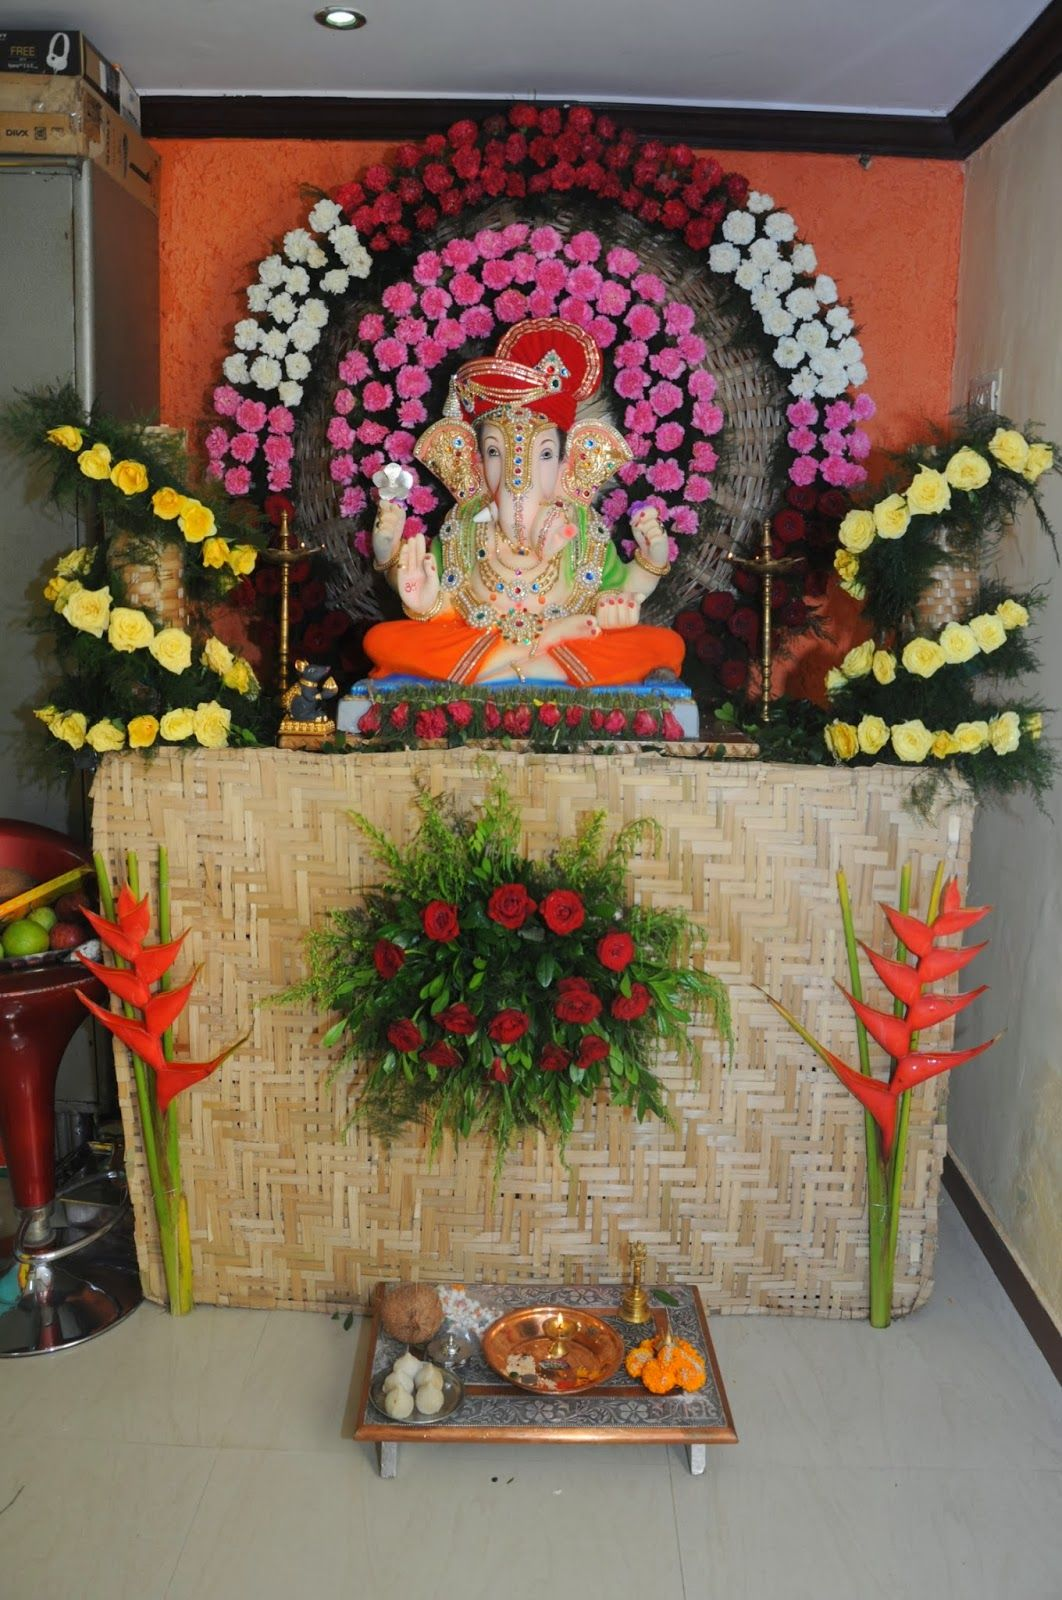 ecofriendly decoration ideas _Anant Harishchandra Shinde 2.JPG ... for Flower Decoration Ideas For Ganpati  588gtk